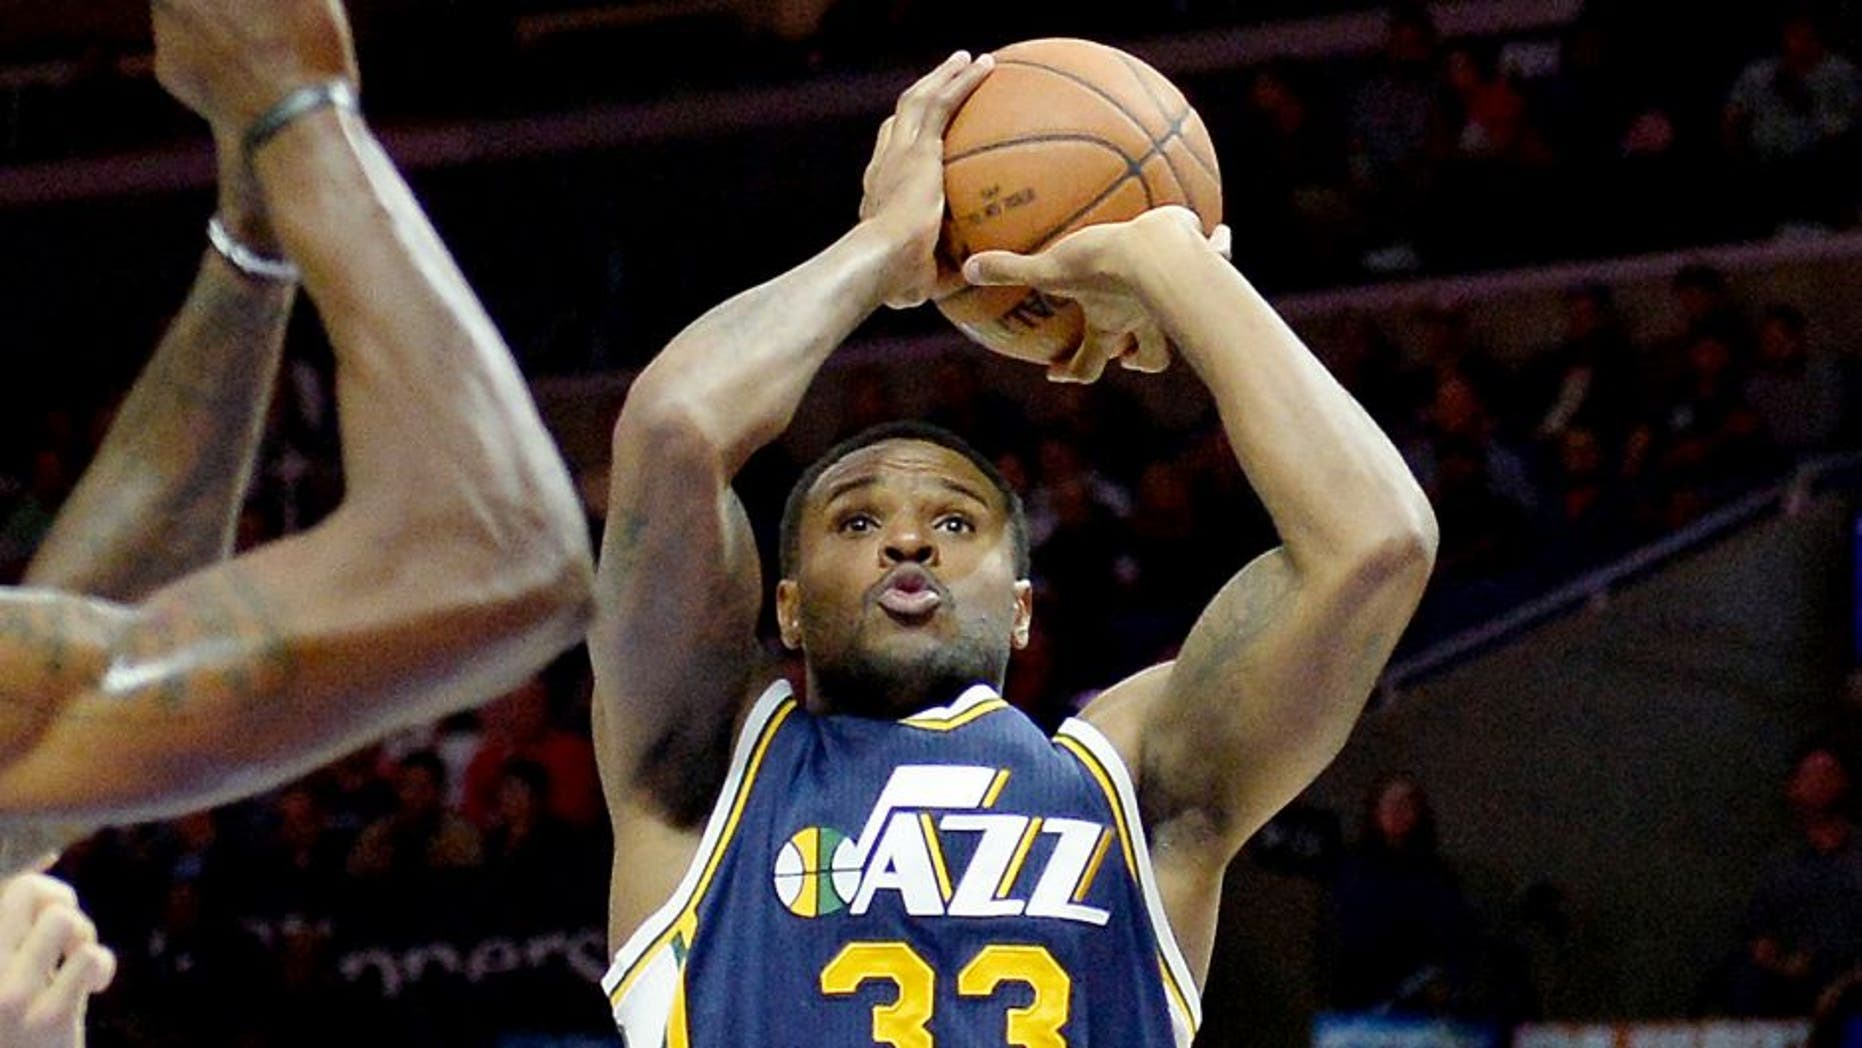 Nov 3, 2014; Los Angeles, CA, USA; Utah Jazz forward Trevor Booker (33) shoots the ball during the first half of a game against the Los Angeles Clippers at Staples Center. Mandatory Credit: Richard Mackson-USA TODAY Sports